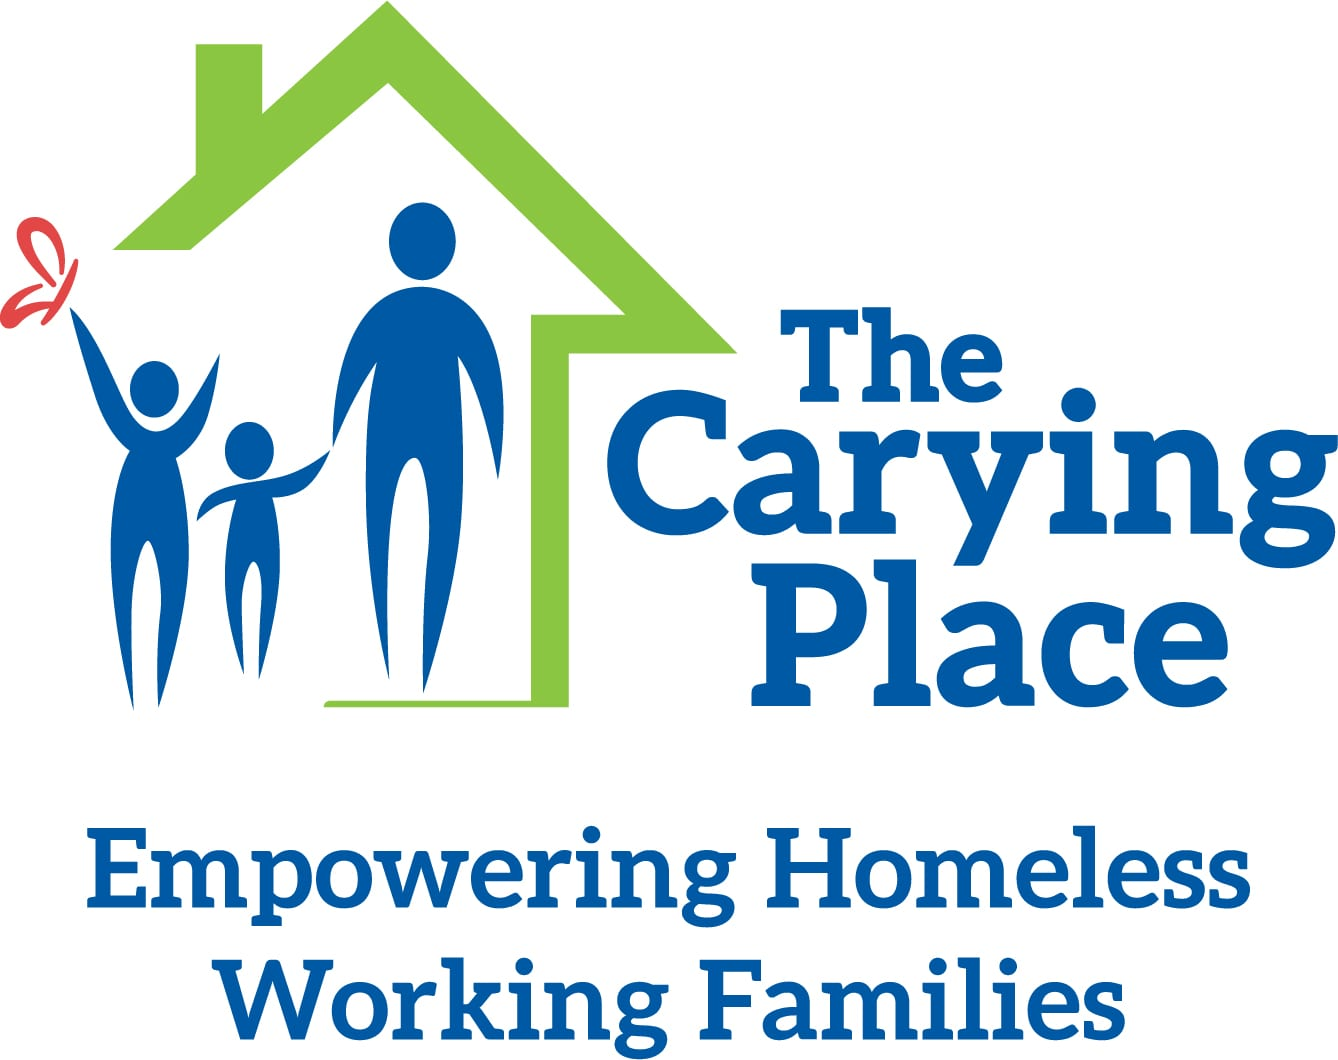 The Carrying Place Logo